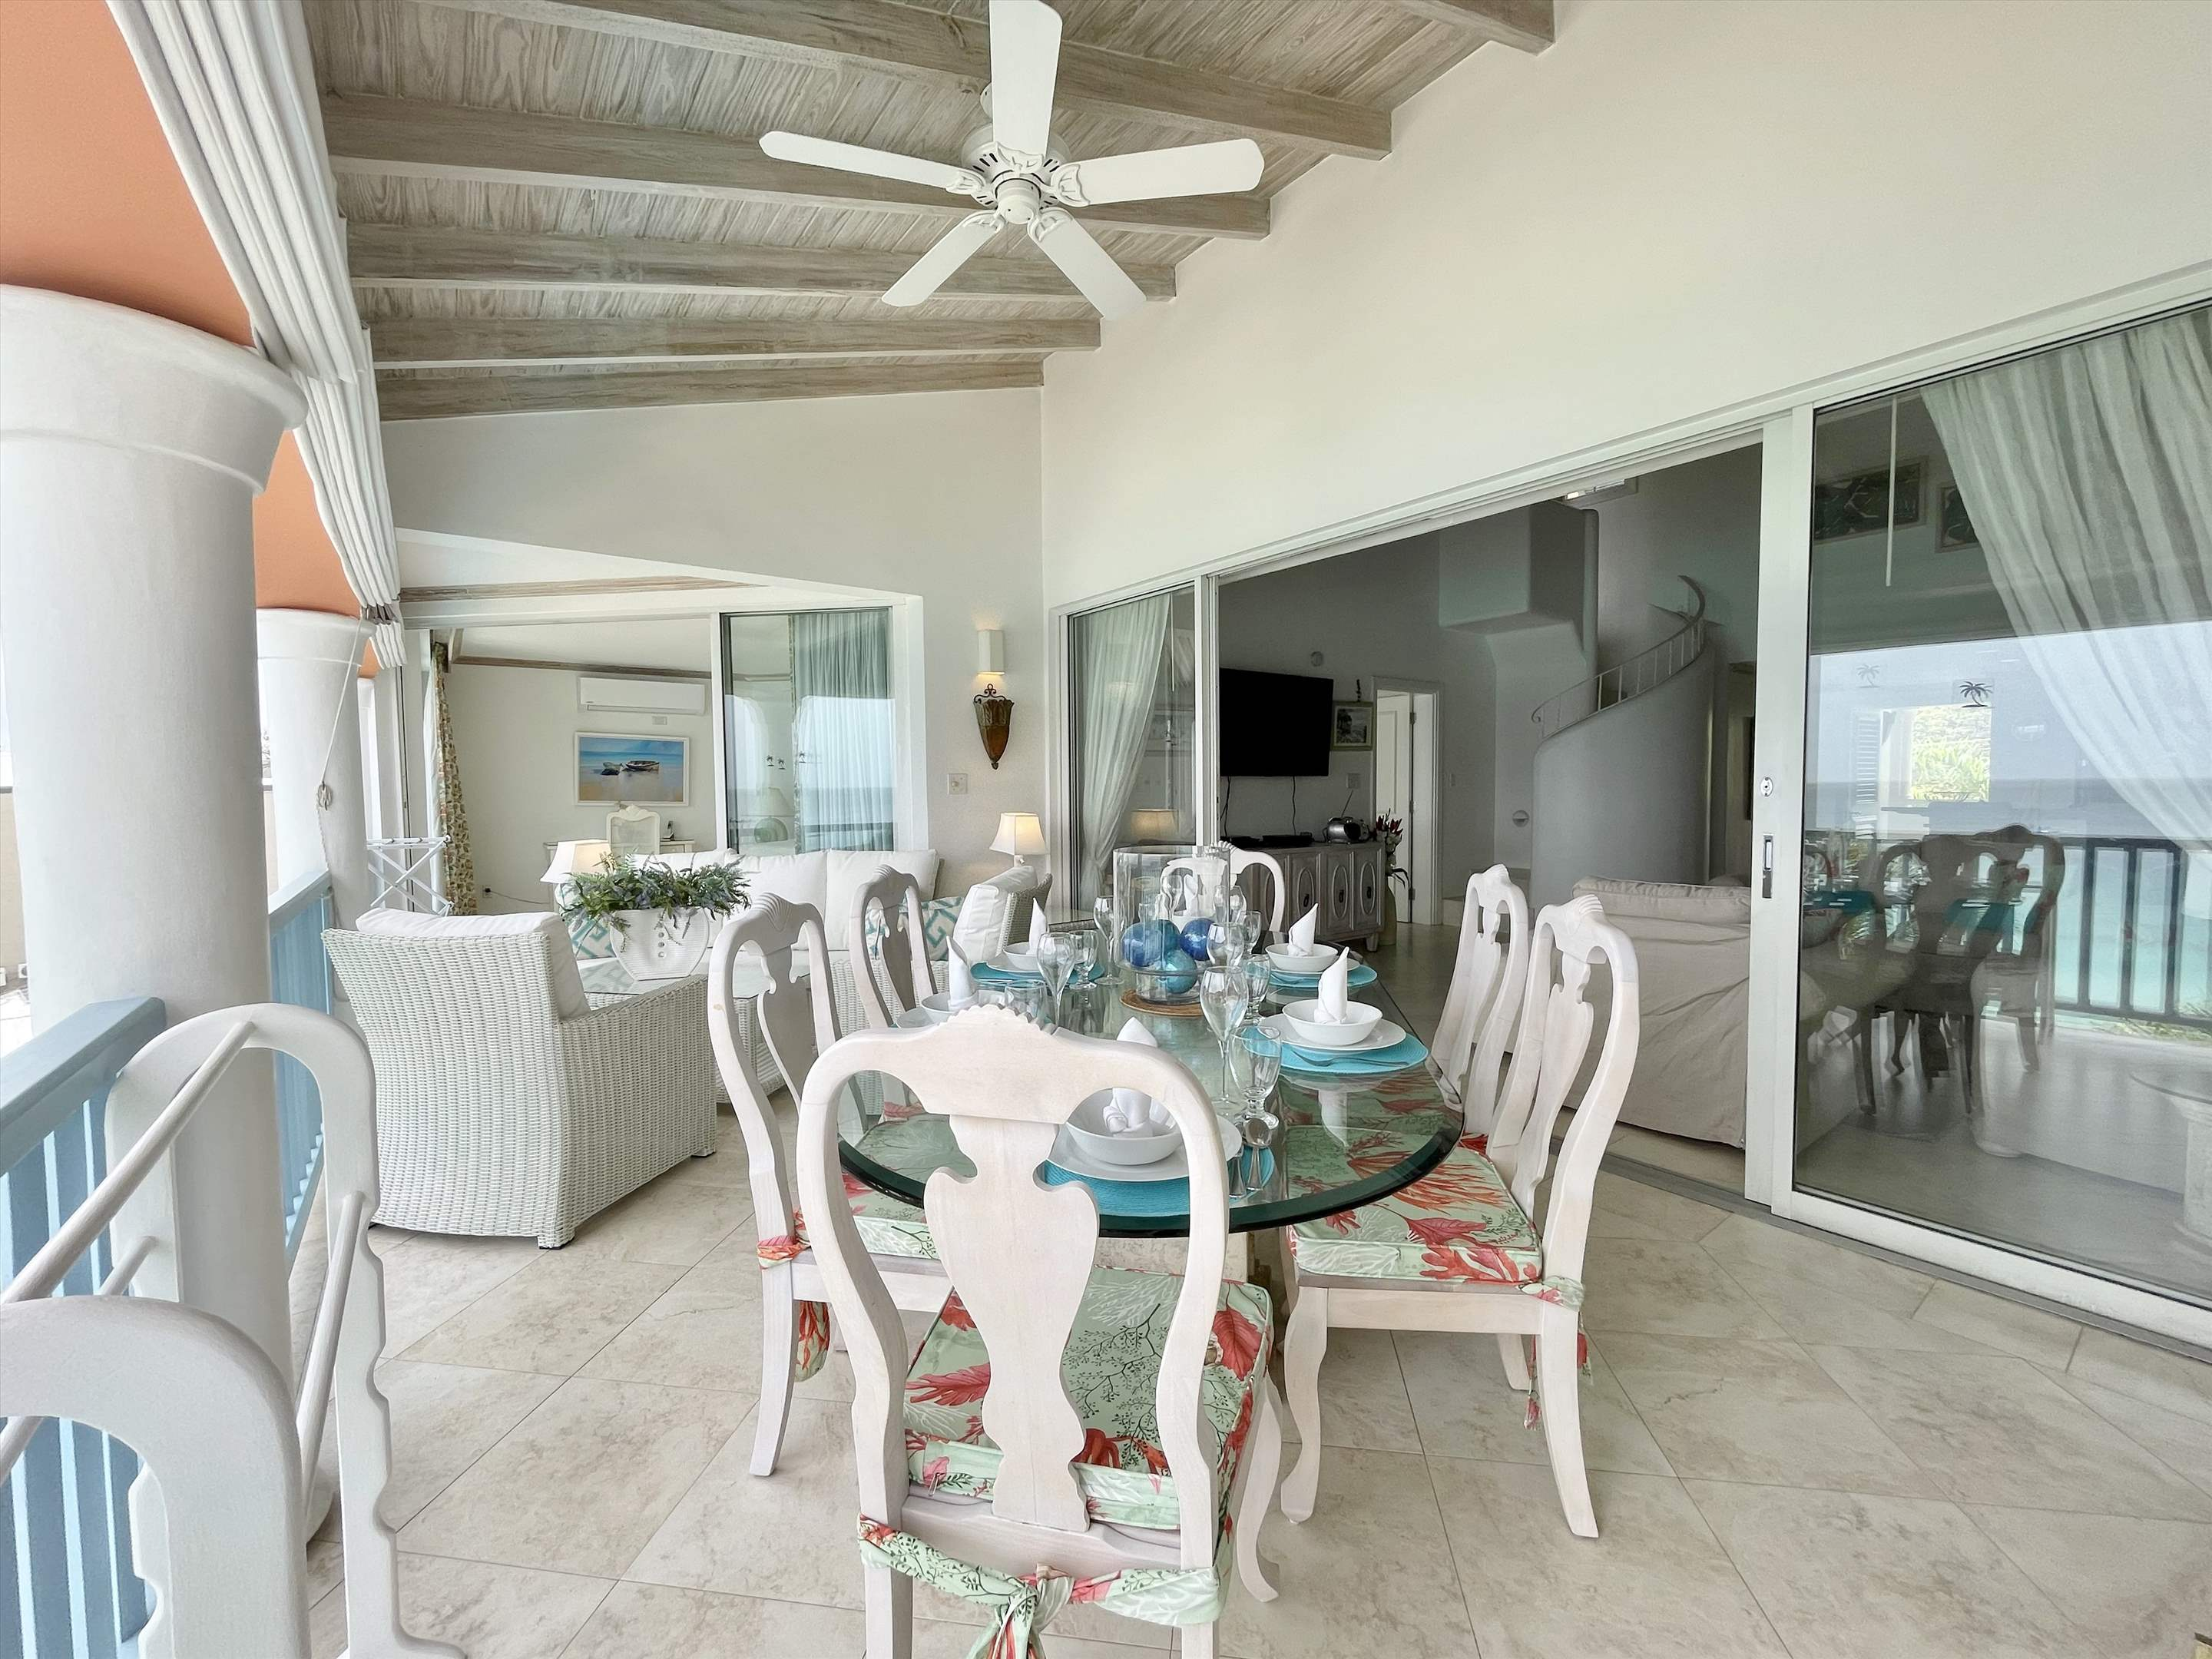 Villas on the Beach 403, 3 bedroom, 3 bedroom apartment in St. James & West Coast, Barbados Photo #3